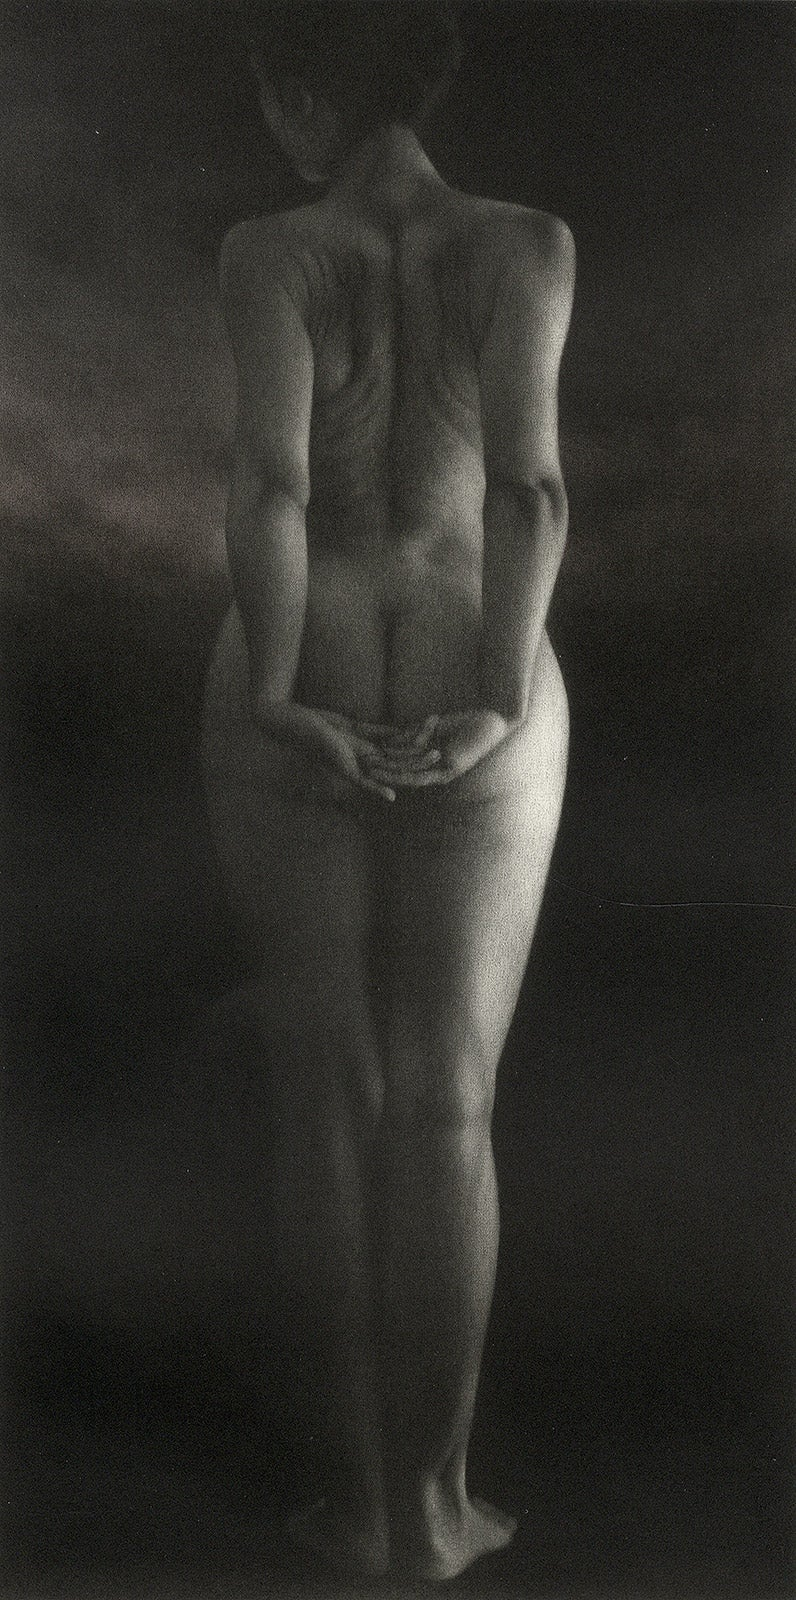 Crepuscule (literally means Dusk. Standing young nude woman facing away)